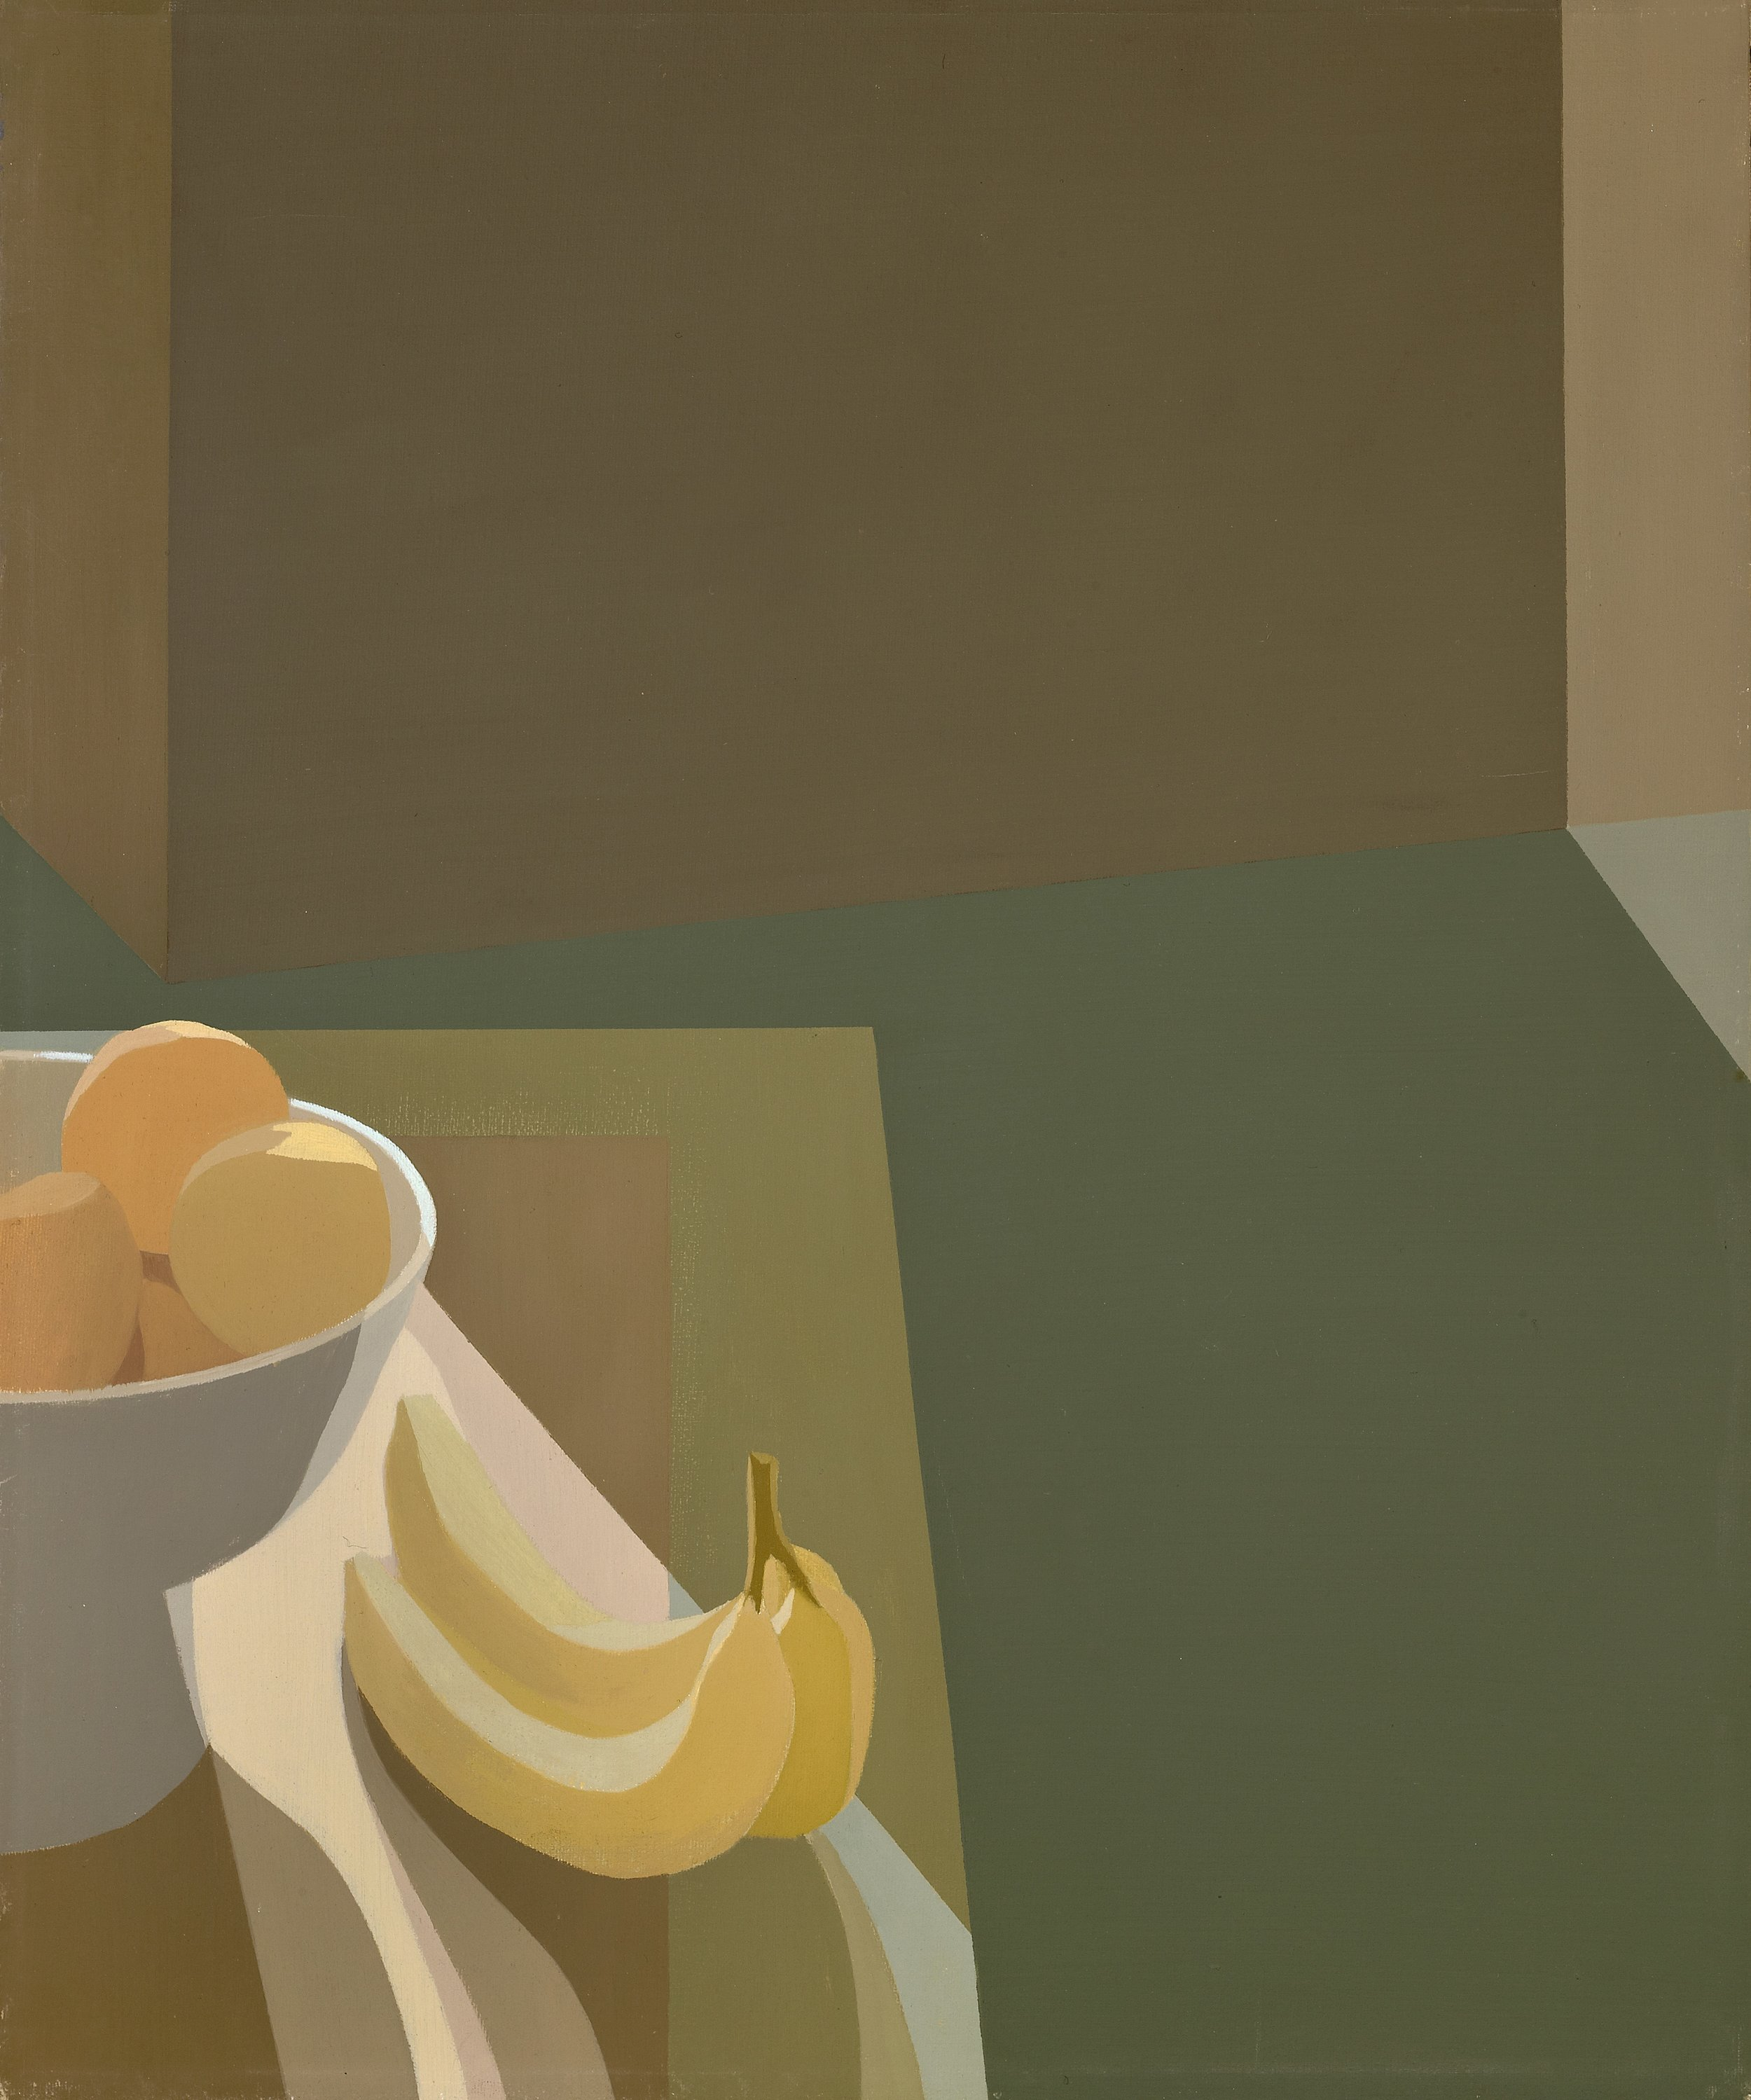 Still Life , 1962  oil on canvas 24 x 20 inches; 61 x 50.8 centimeters  $40,000